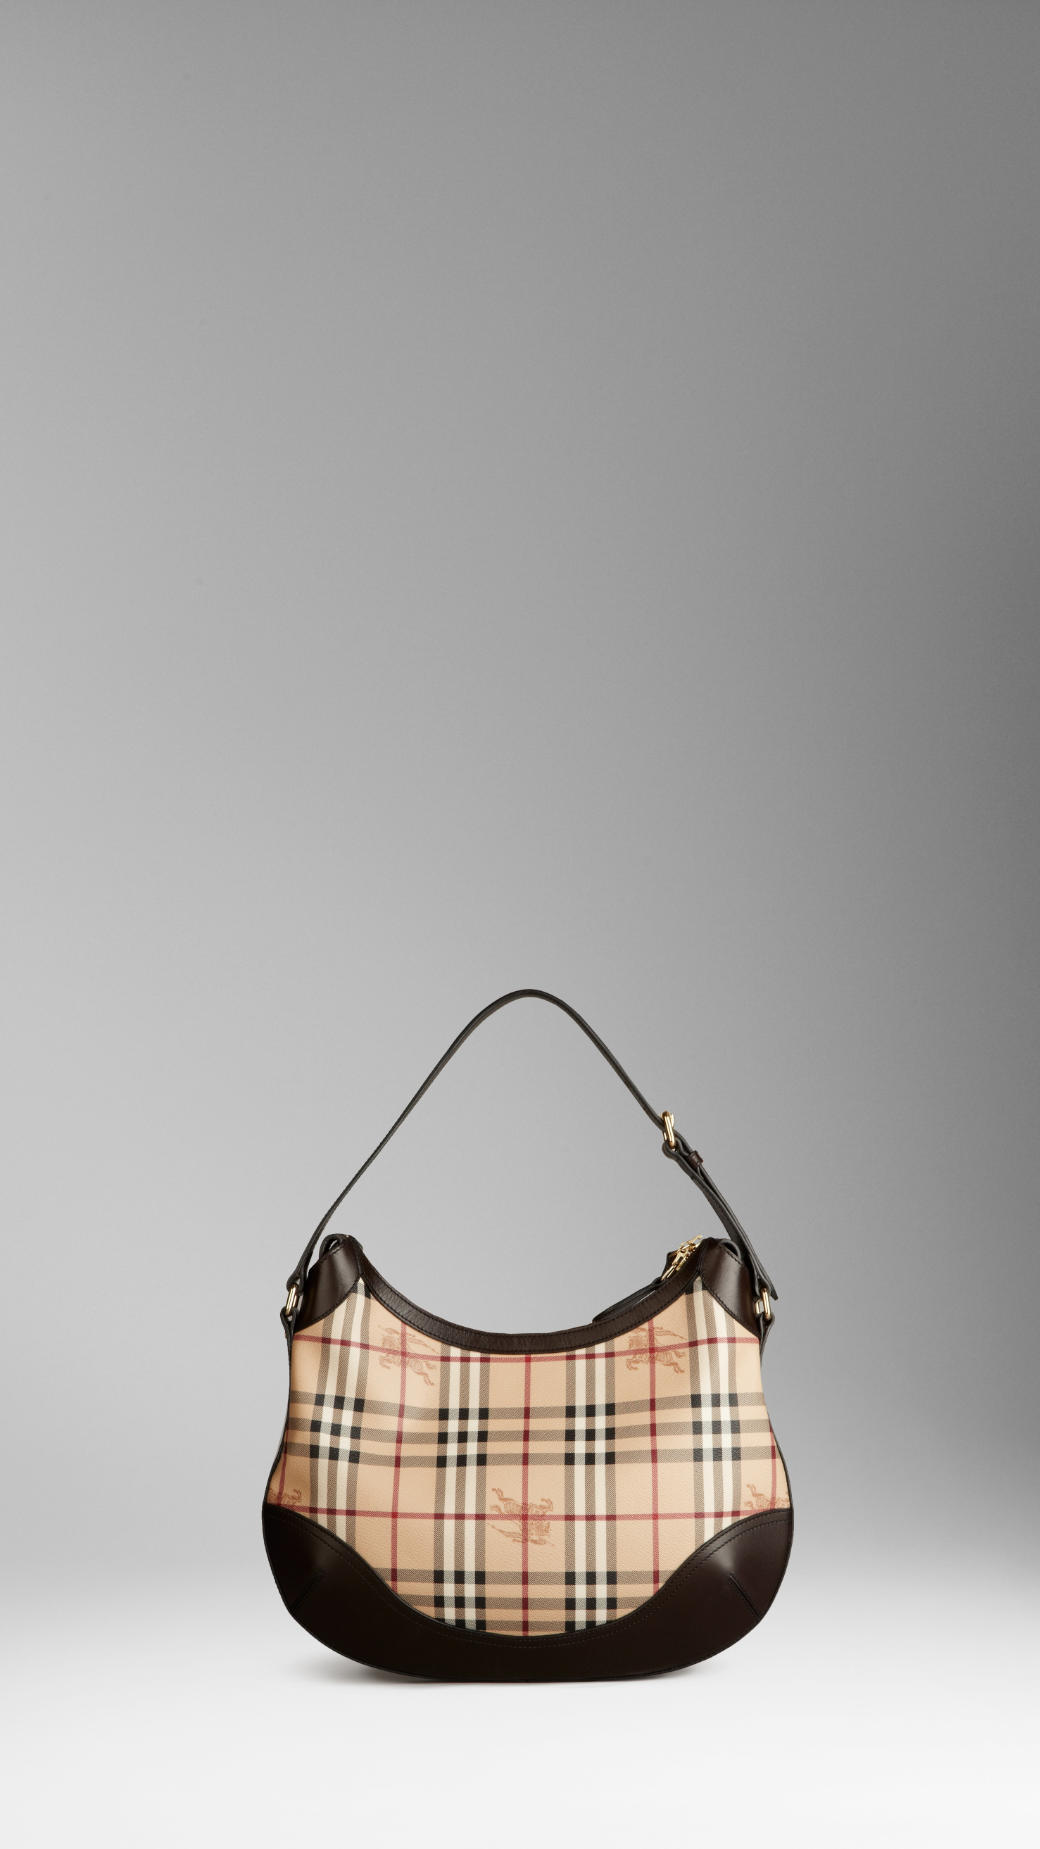 07e6a0d839c7 Burberry Medium Haymarket Check Hobo Bag in Natural - Lyst